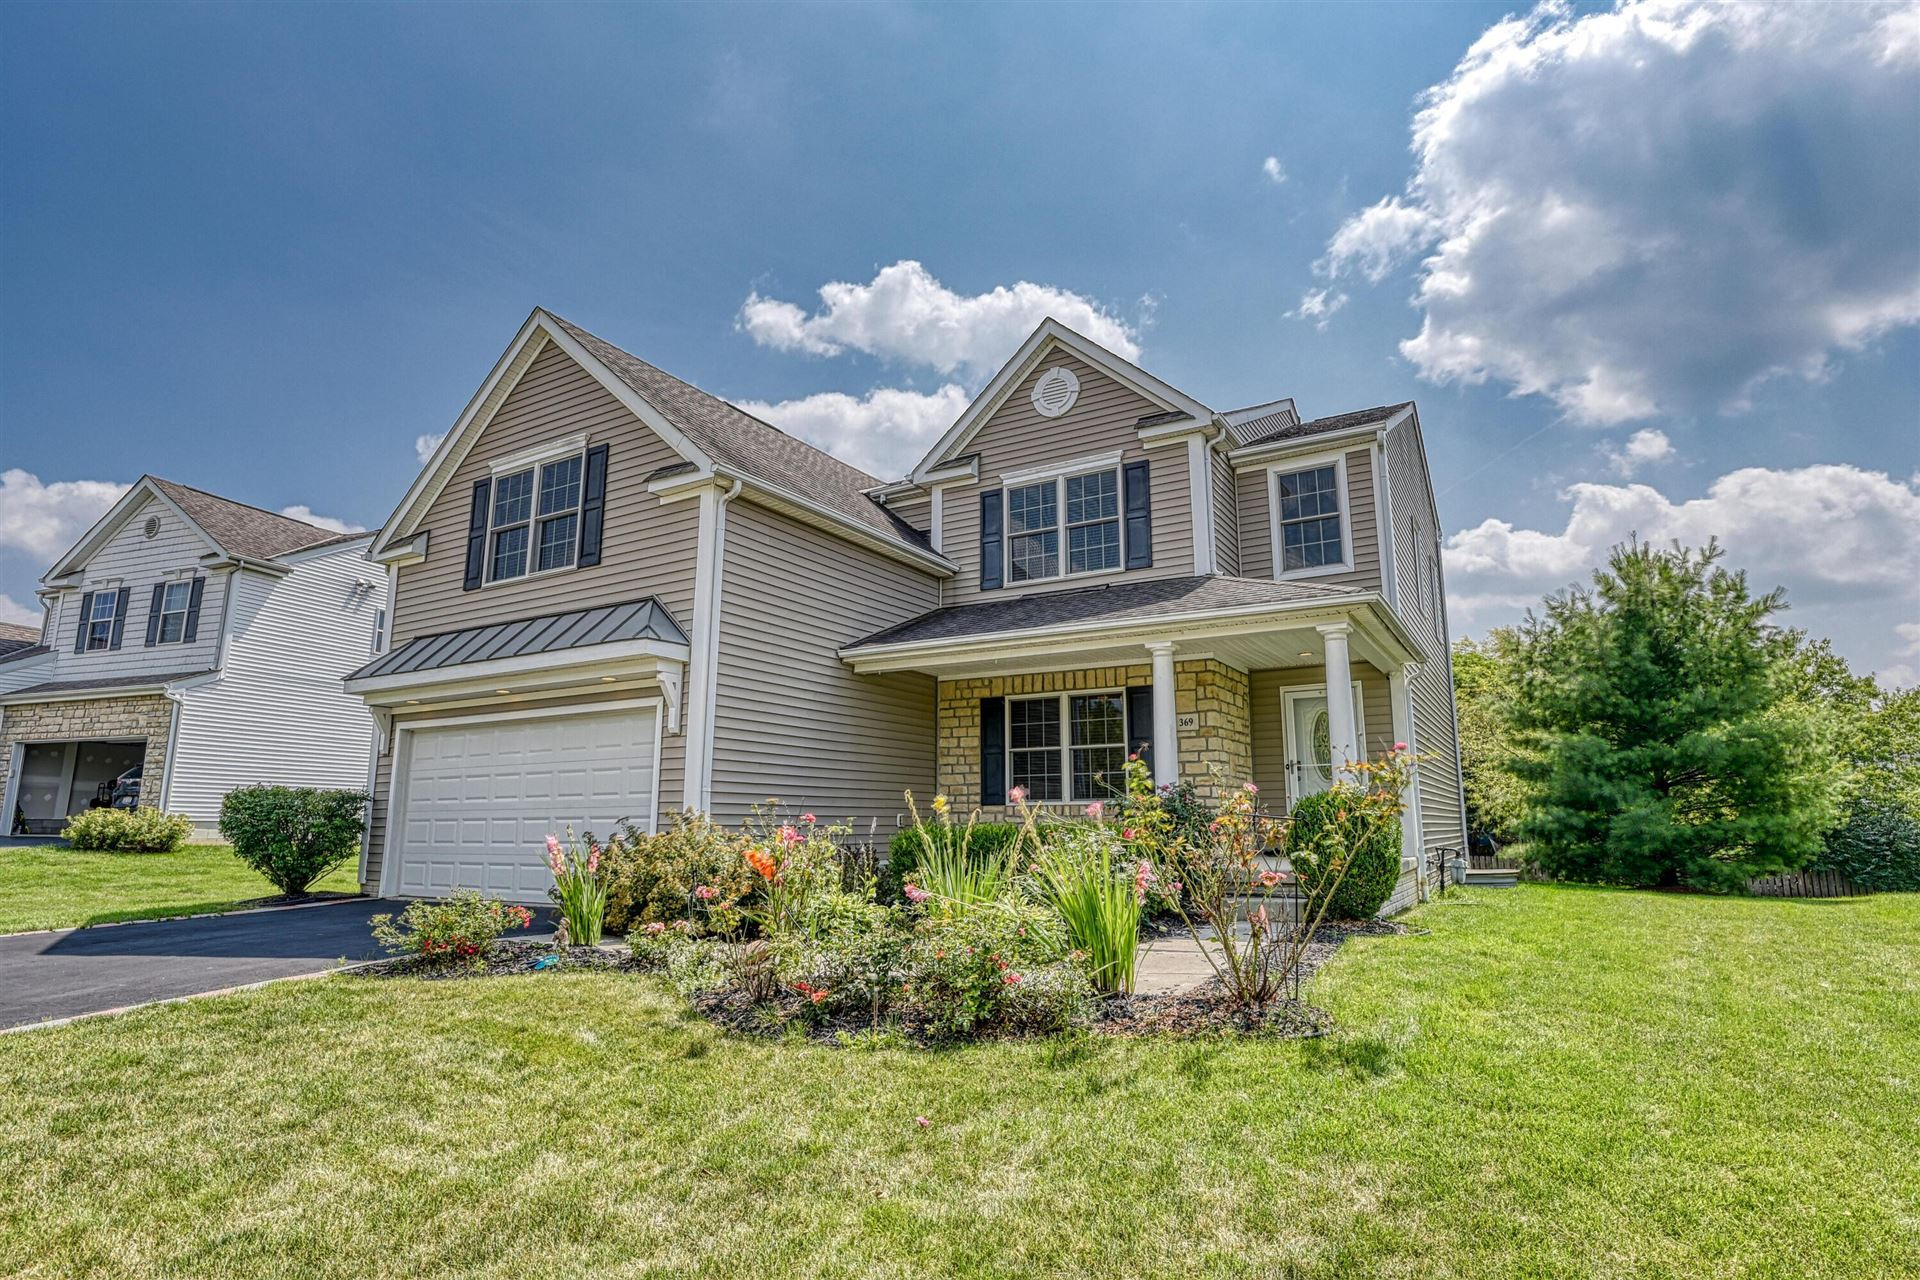 Photo of 369 Amber Light Circle, Delaware, OH 43015 (MLS # 221029058)